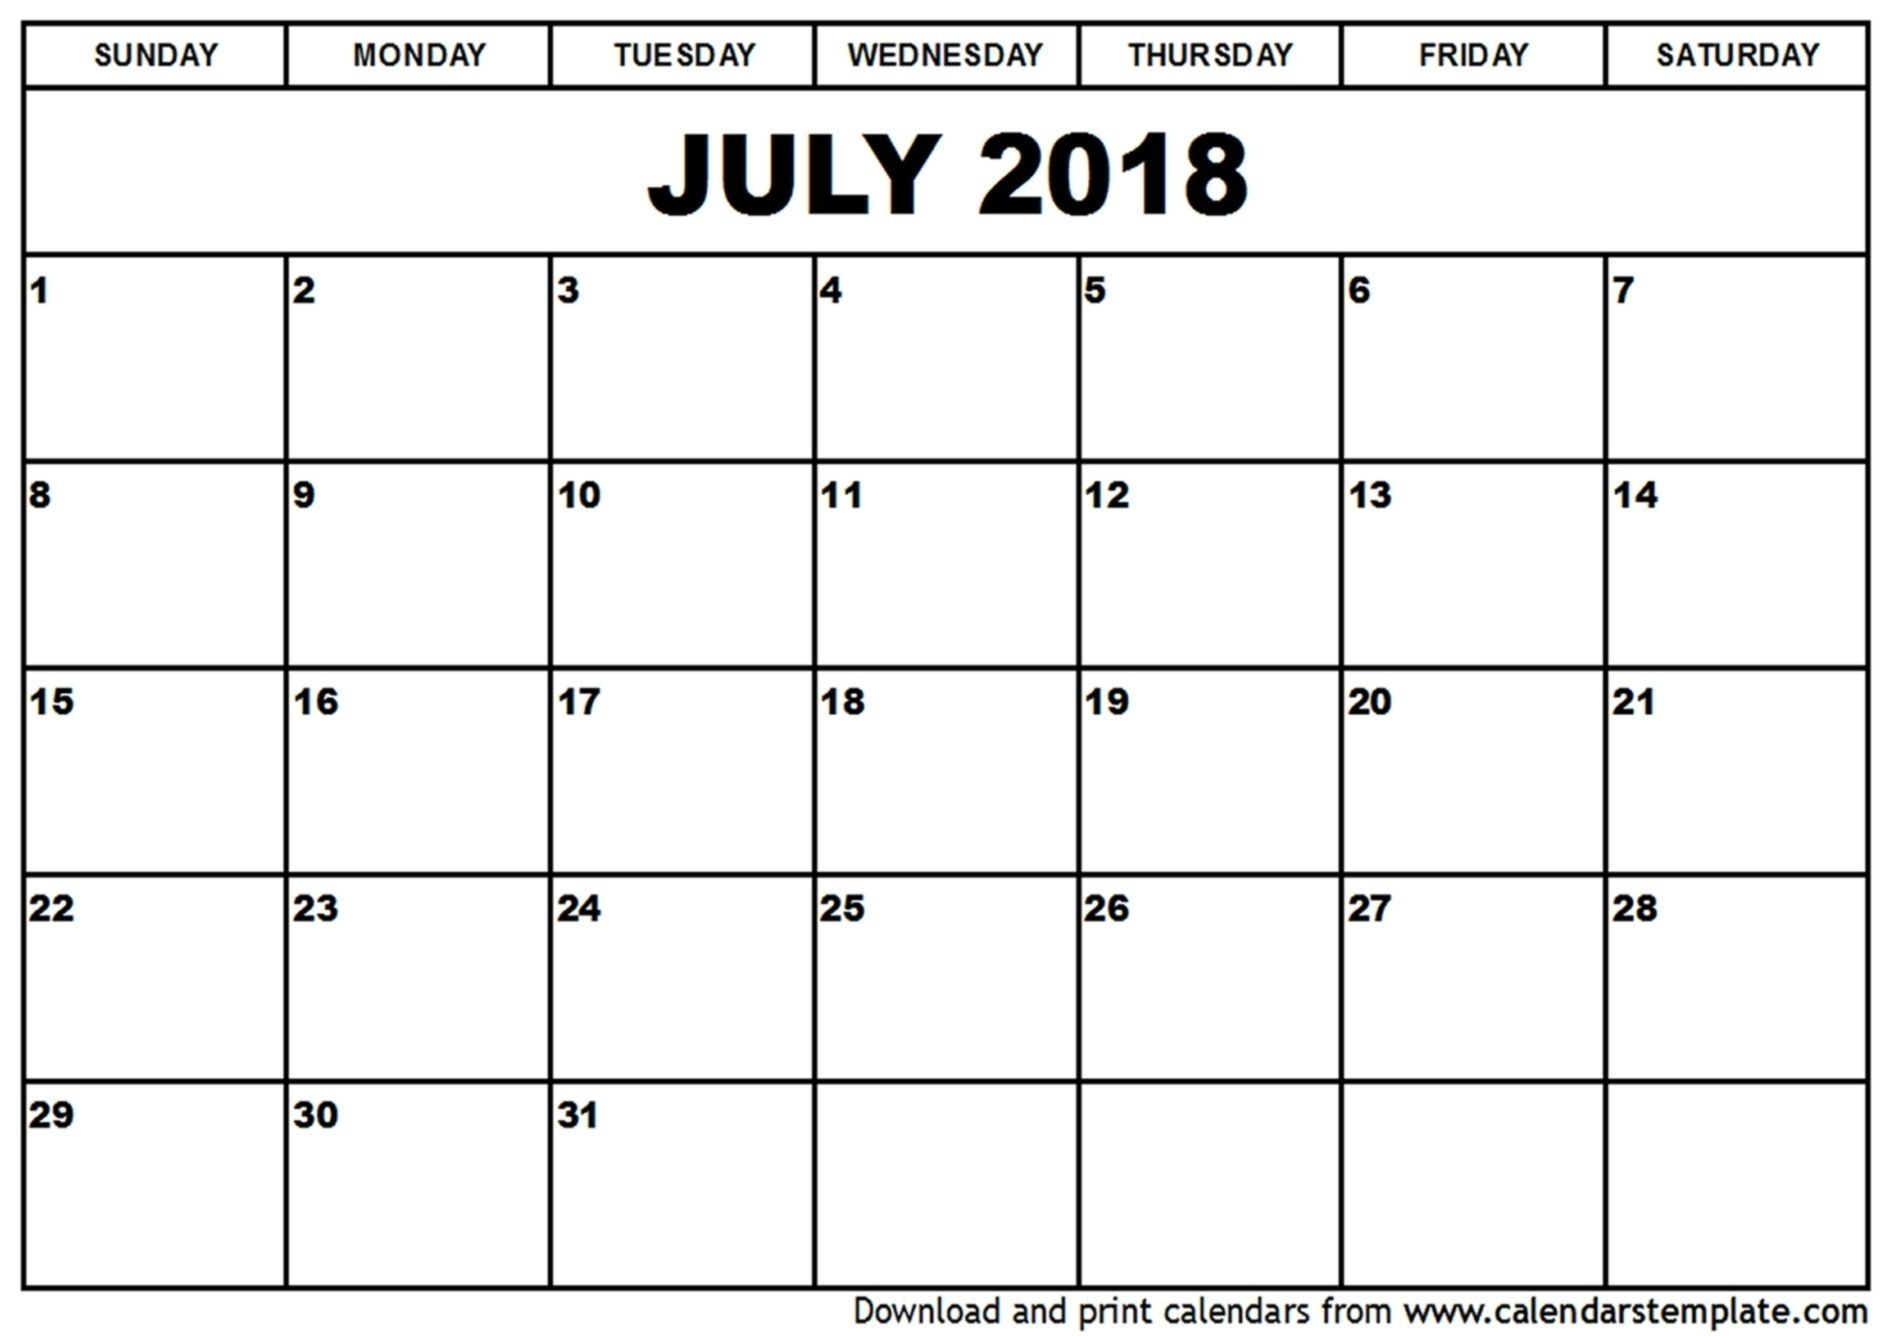 free printable 4x6 monthly calendar in 2020 | printable